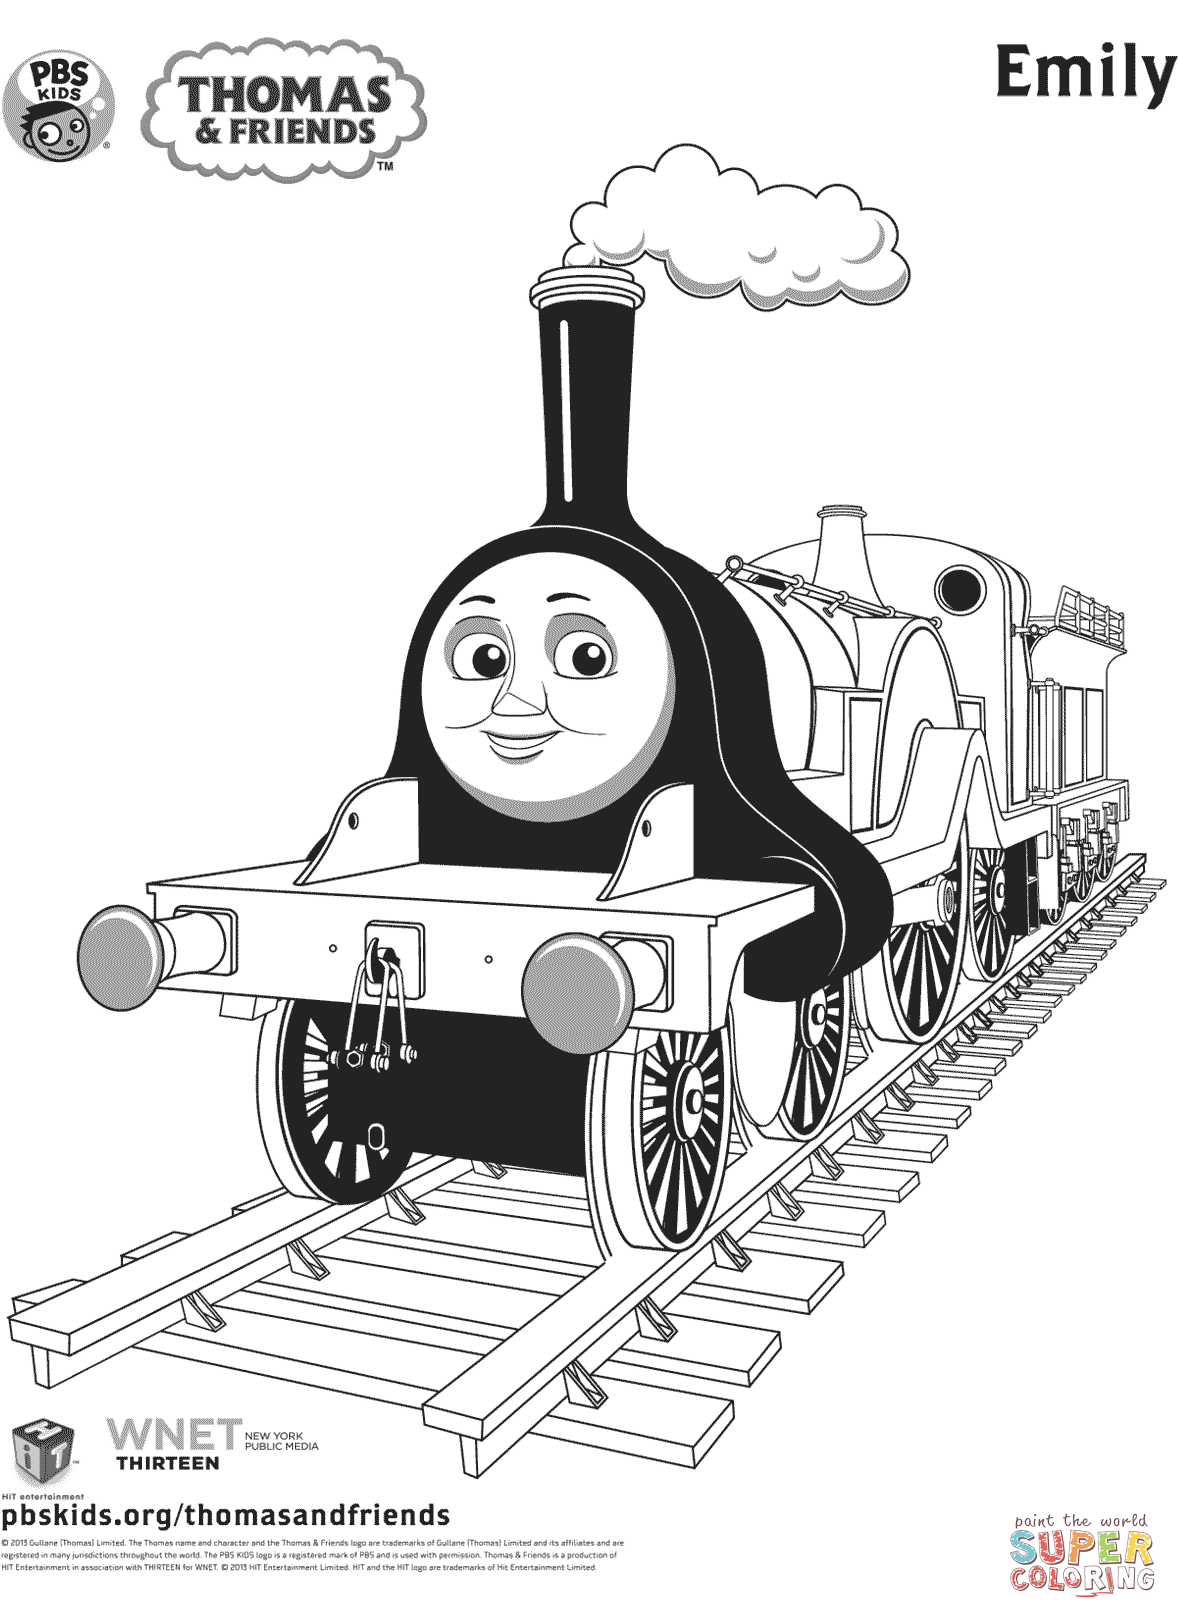 thomas and friends coloring get this thomas the train coloring pages online 28571 coloring thomas and friends